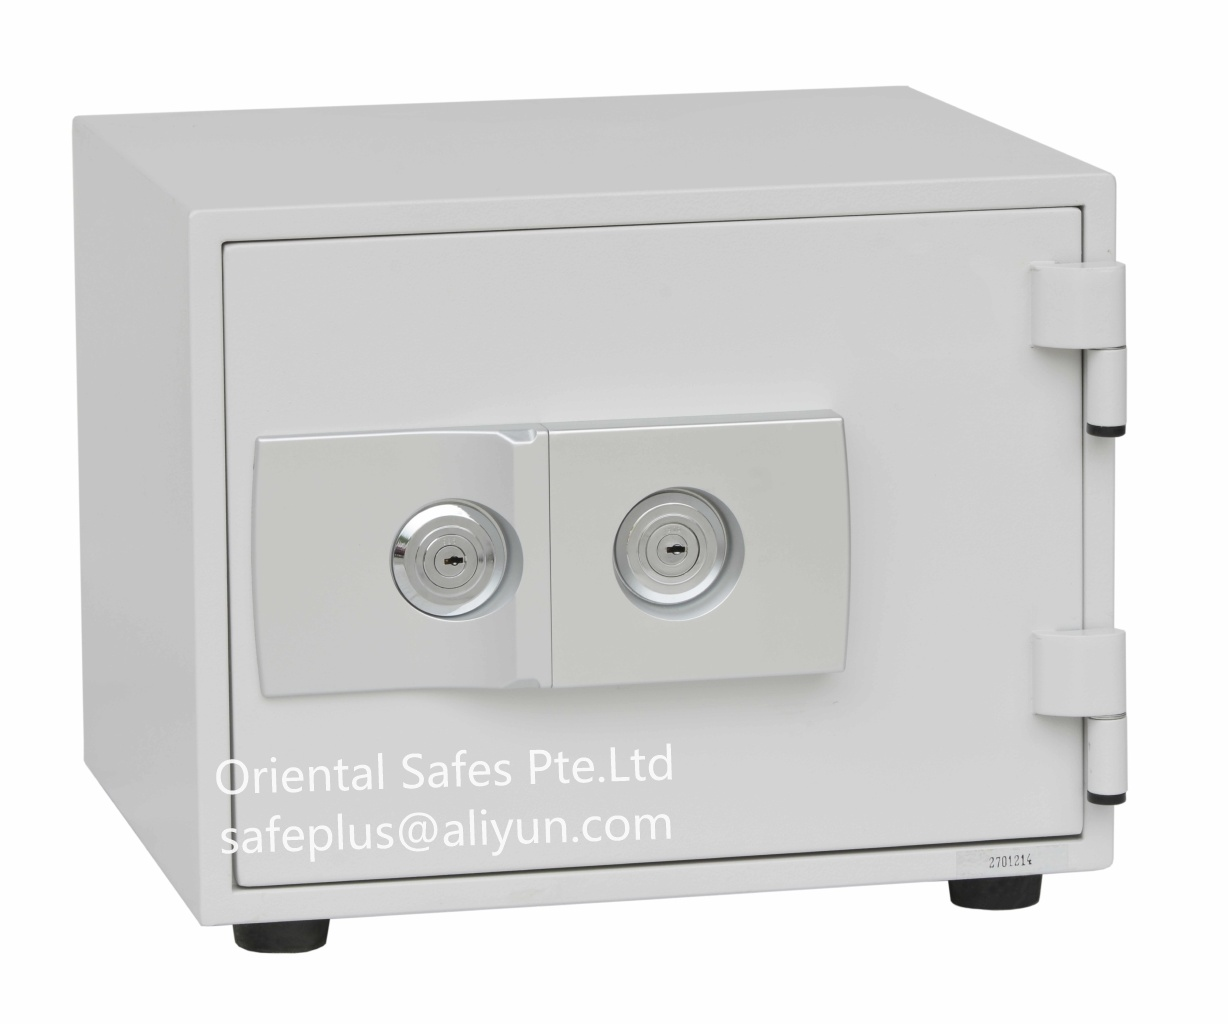 SP16 Fire resistant safe small safes for home safes serials